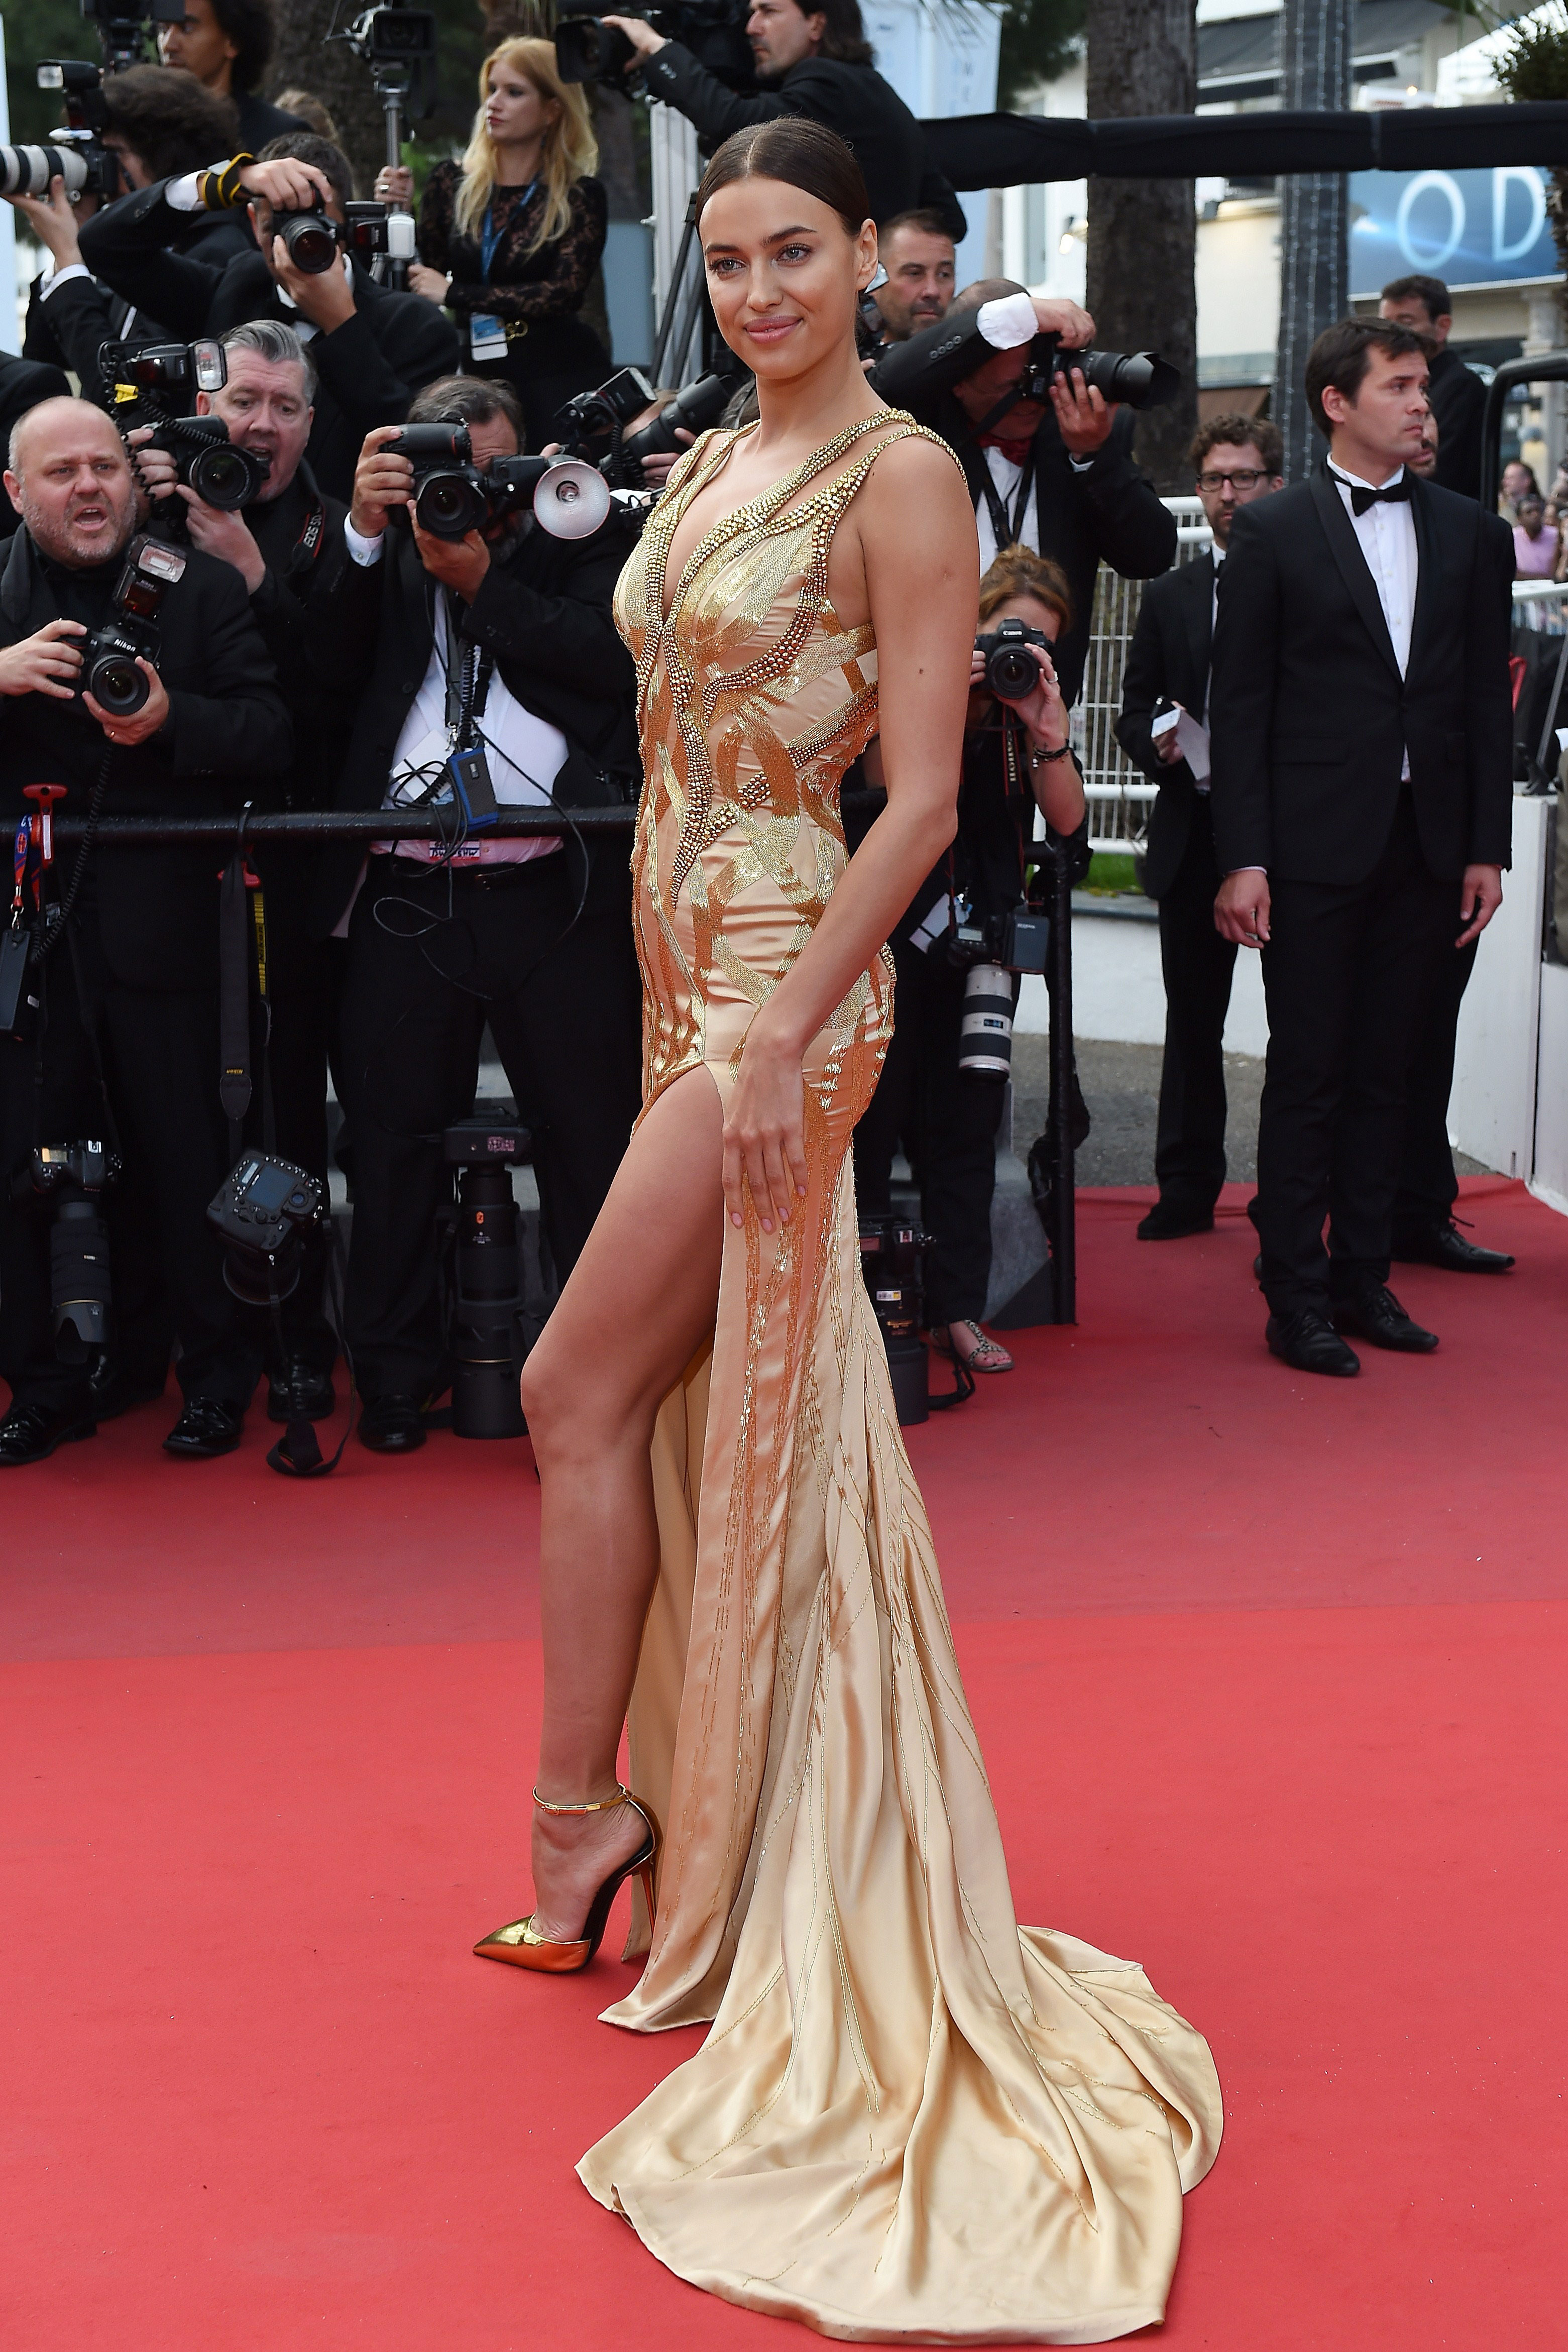 Irina Shayk poses as she arrives for the screening of the film 'Sicario' at the 68th Cannes Film Festival.